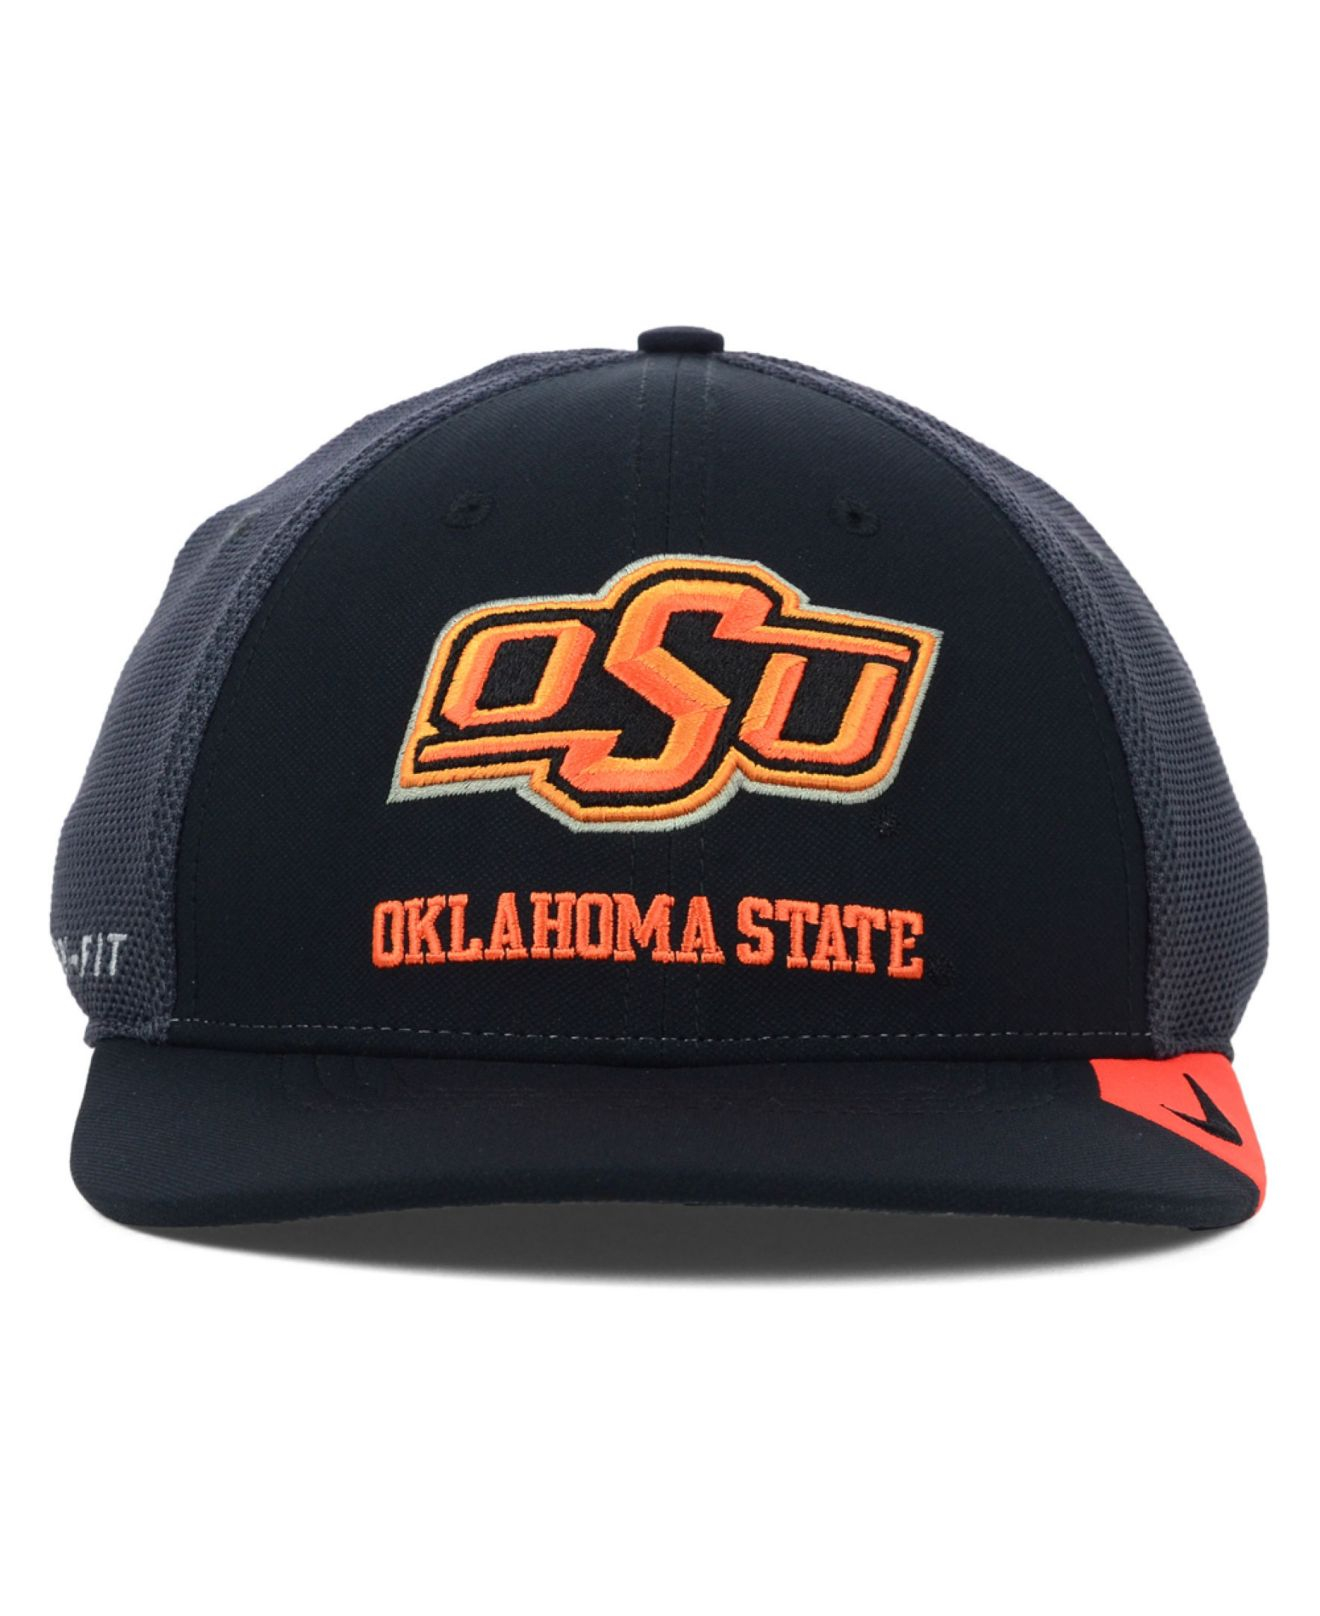 fd669958 ... clearance lyst nike oklahoma state cowboys ncaa conference legacy cap  in black 437de f0d46